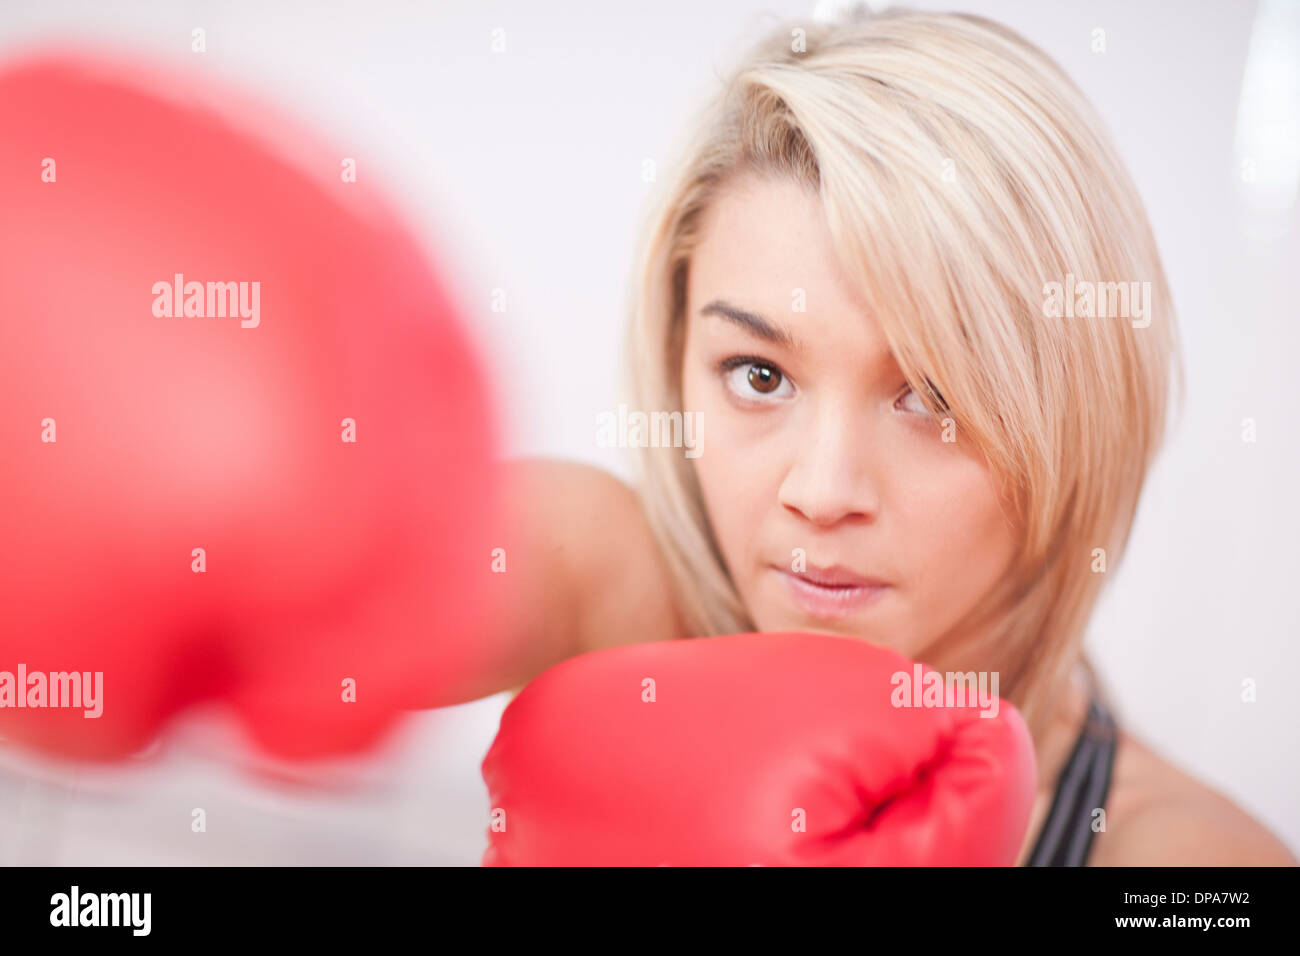 Portrait of young woman wearing boxing gloves - Stock Image